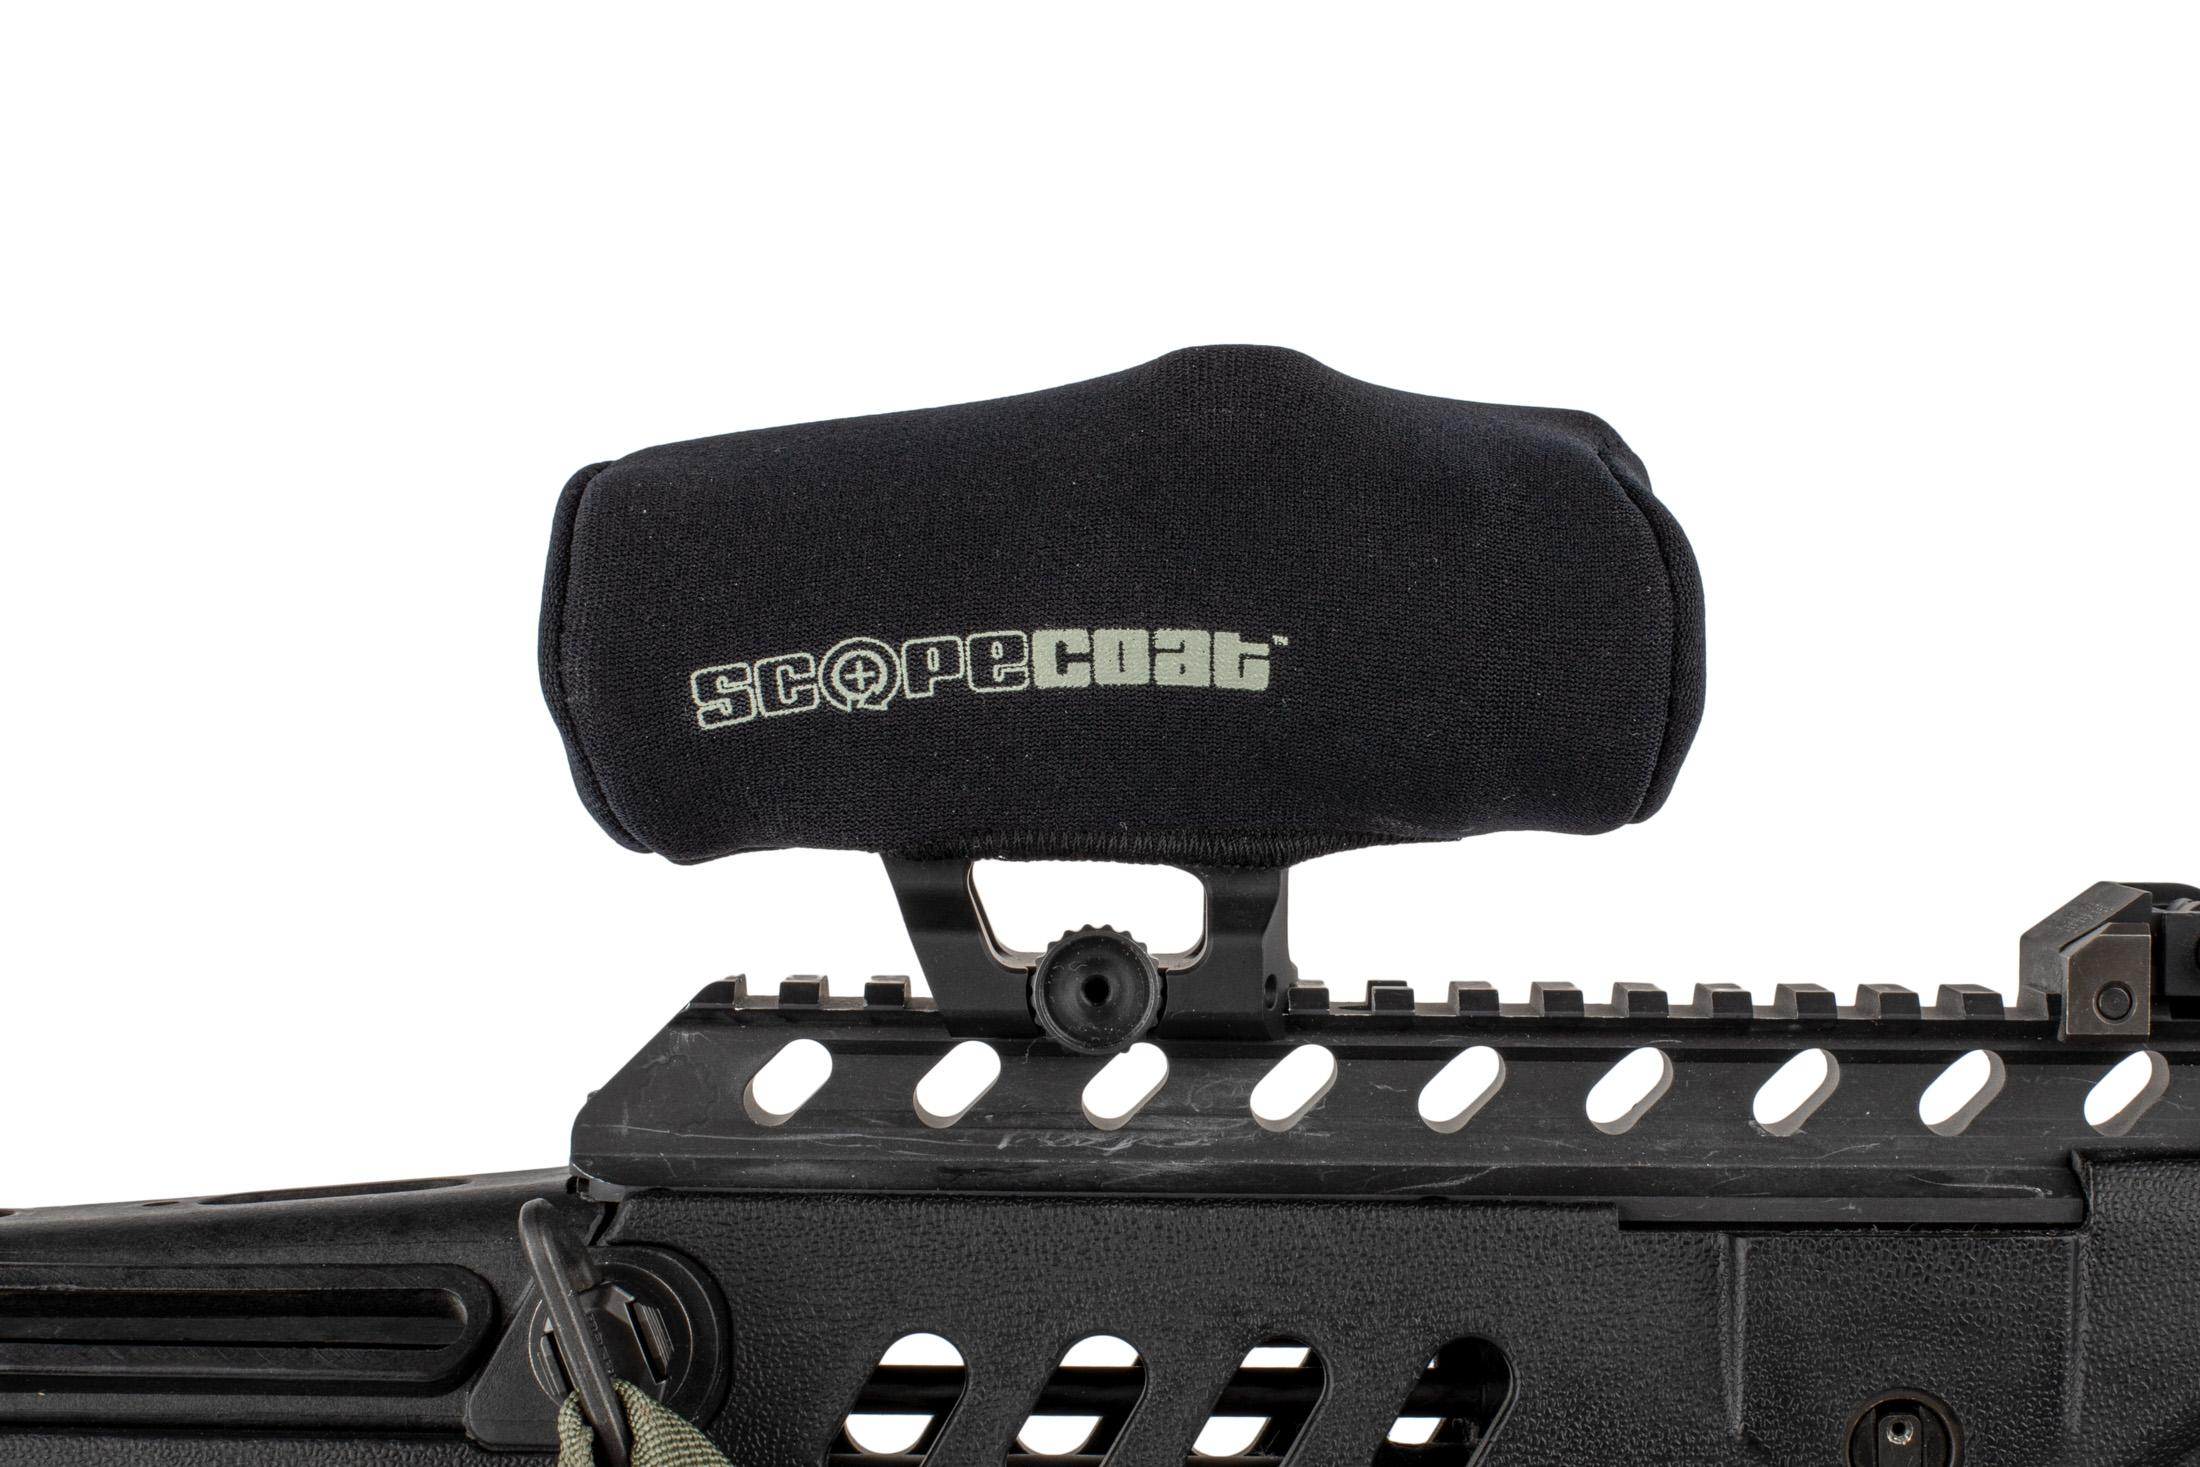 This Scopecoat red dot cover is designed to fit Aimpoint M2 and M3 red dot sights